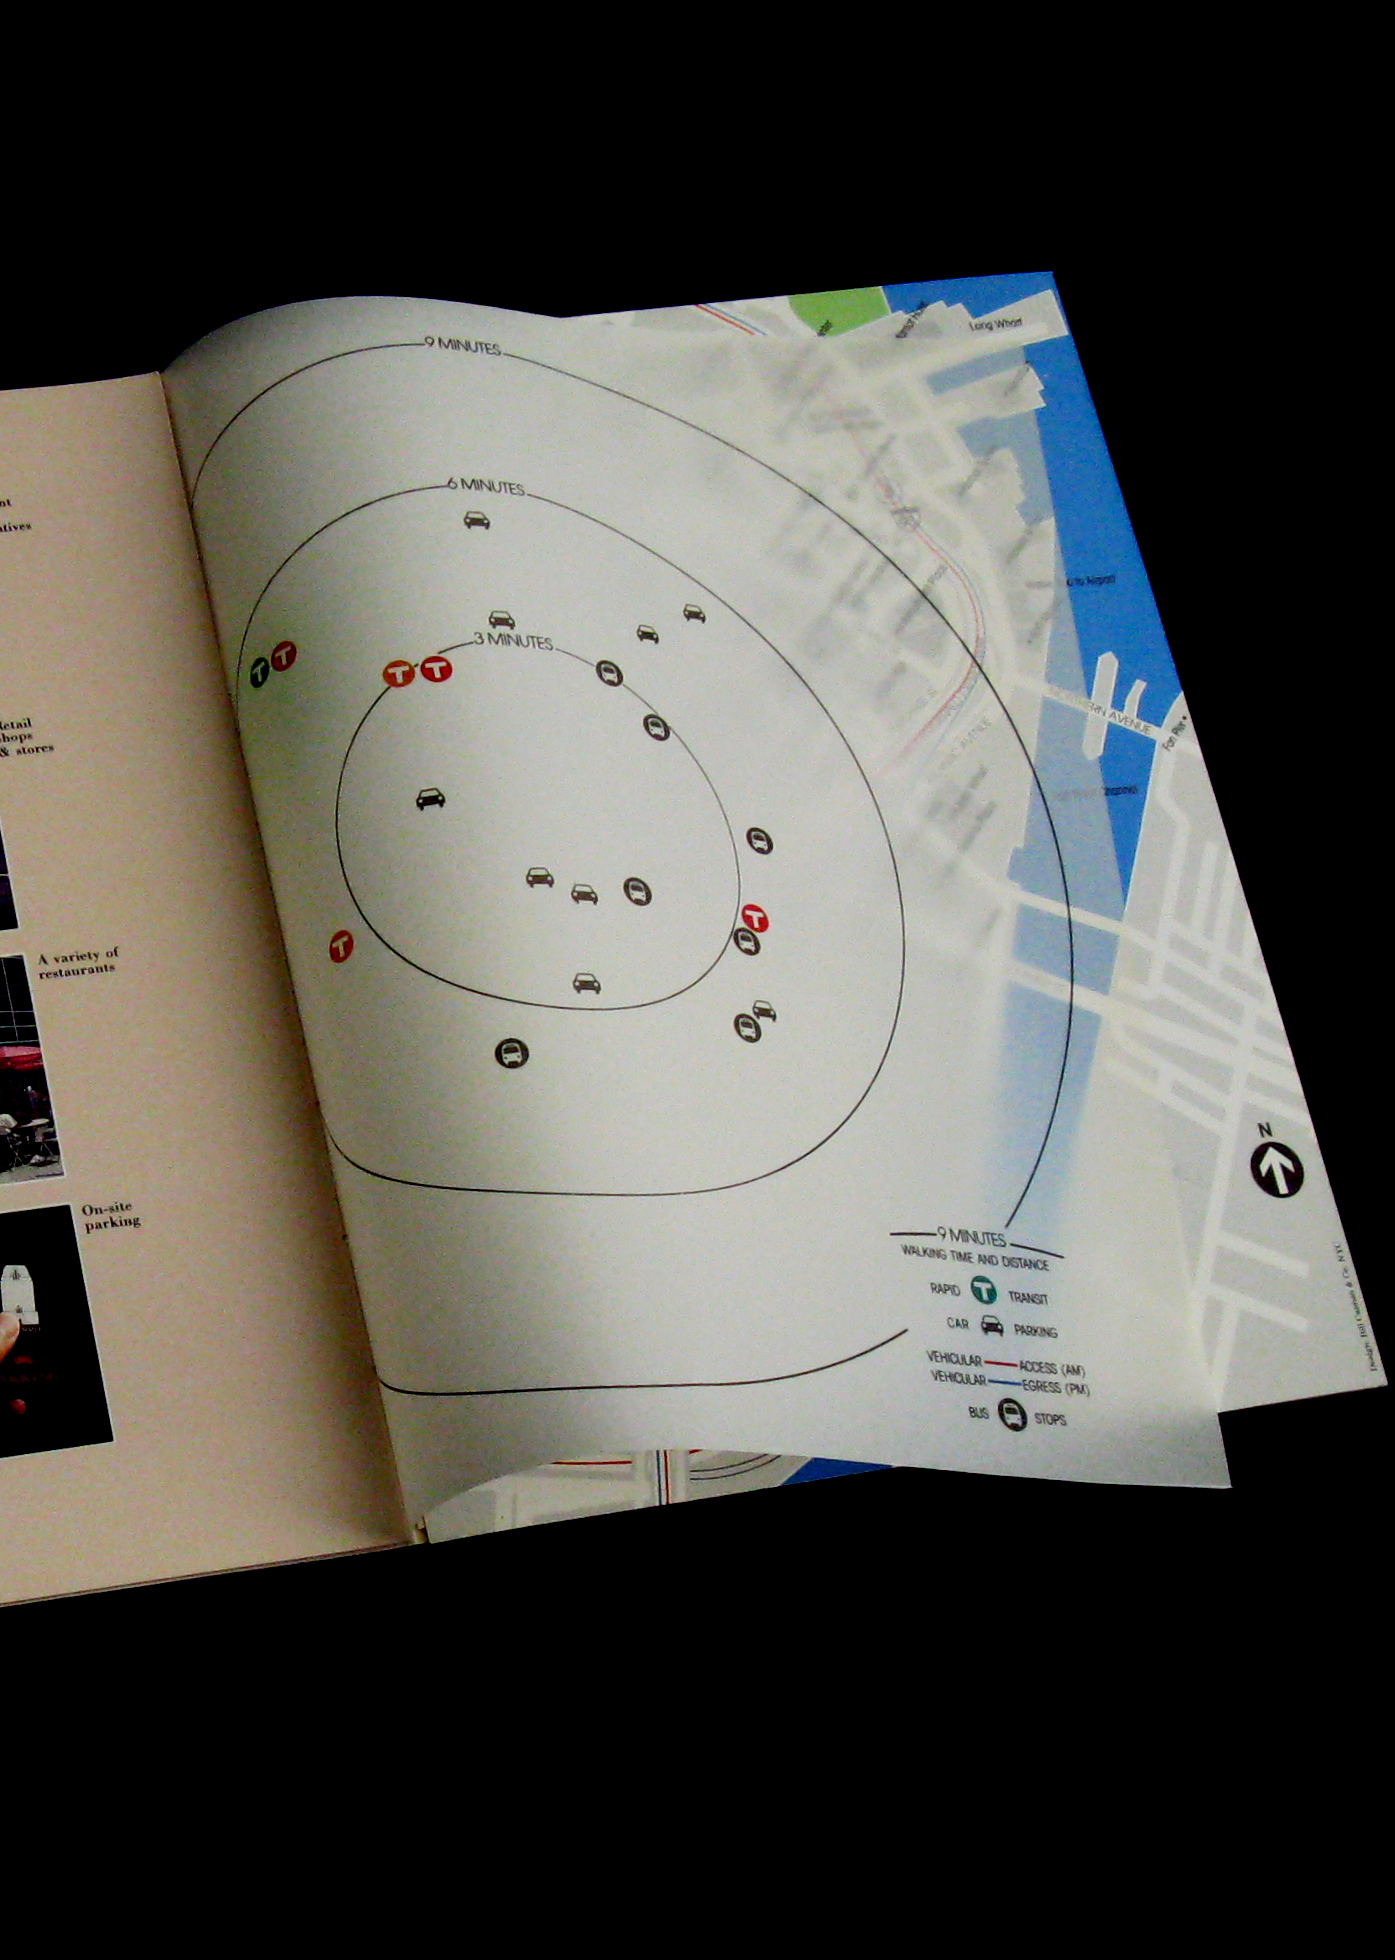 Brochure opened to a map page with translucent overlay showing distances and walking times.